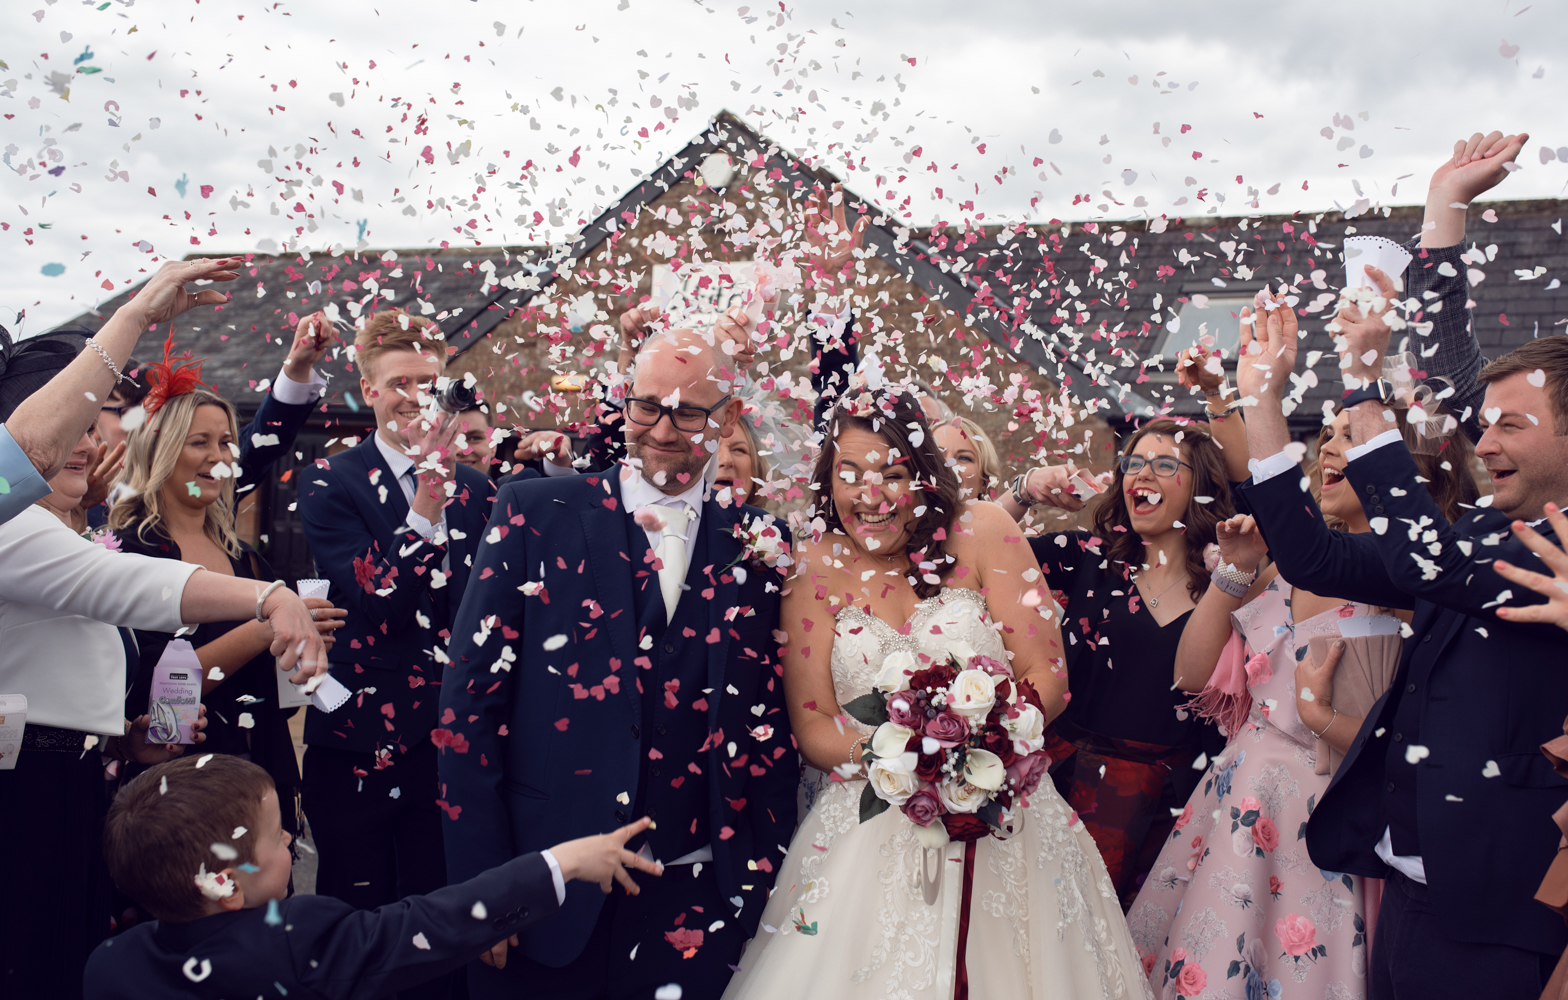 Bride and groom during the manic confetti shower